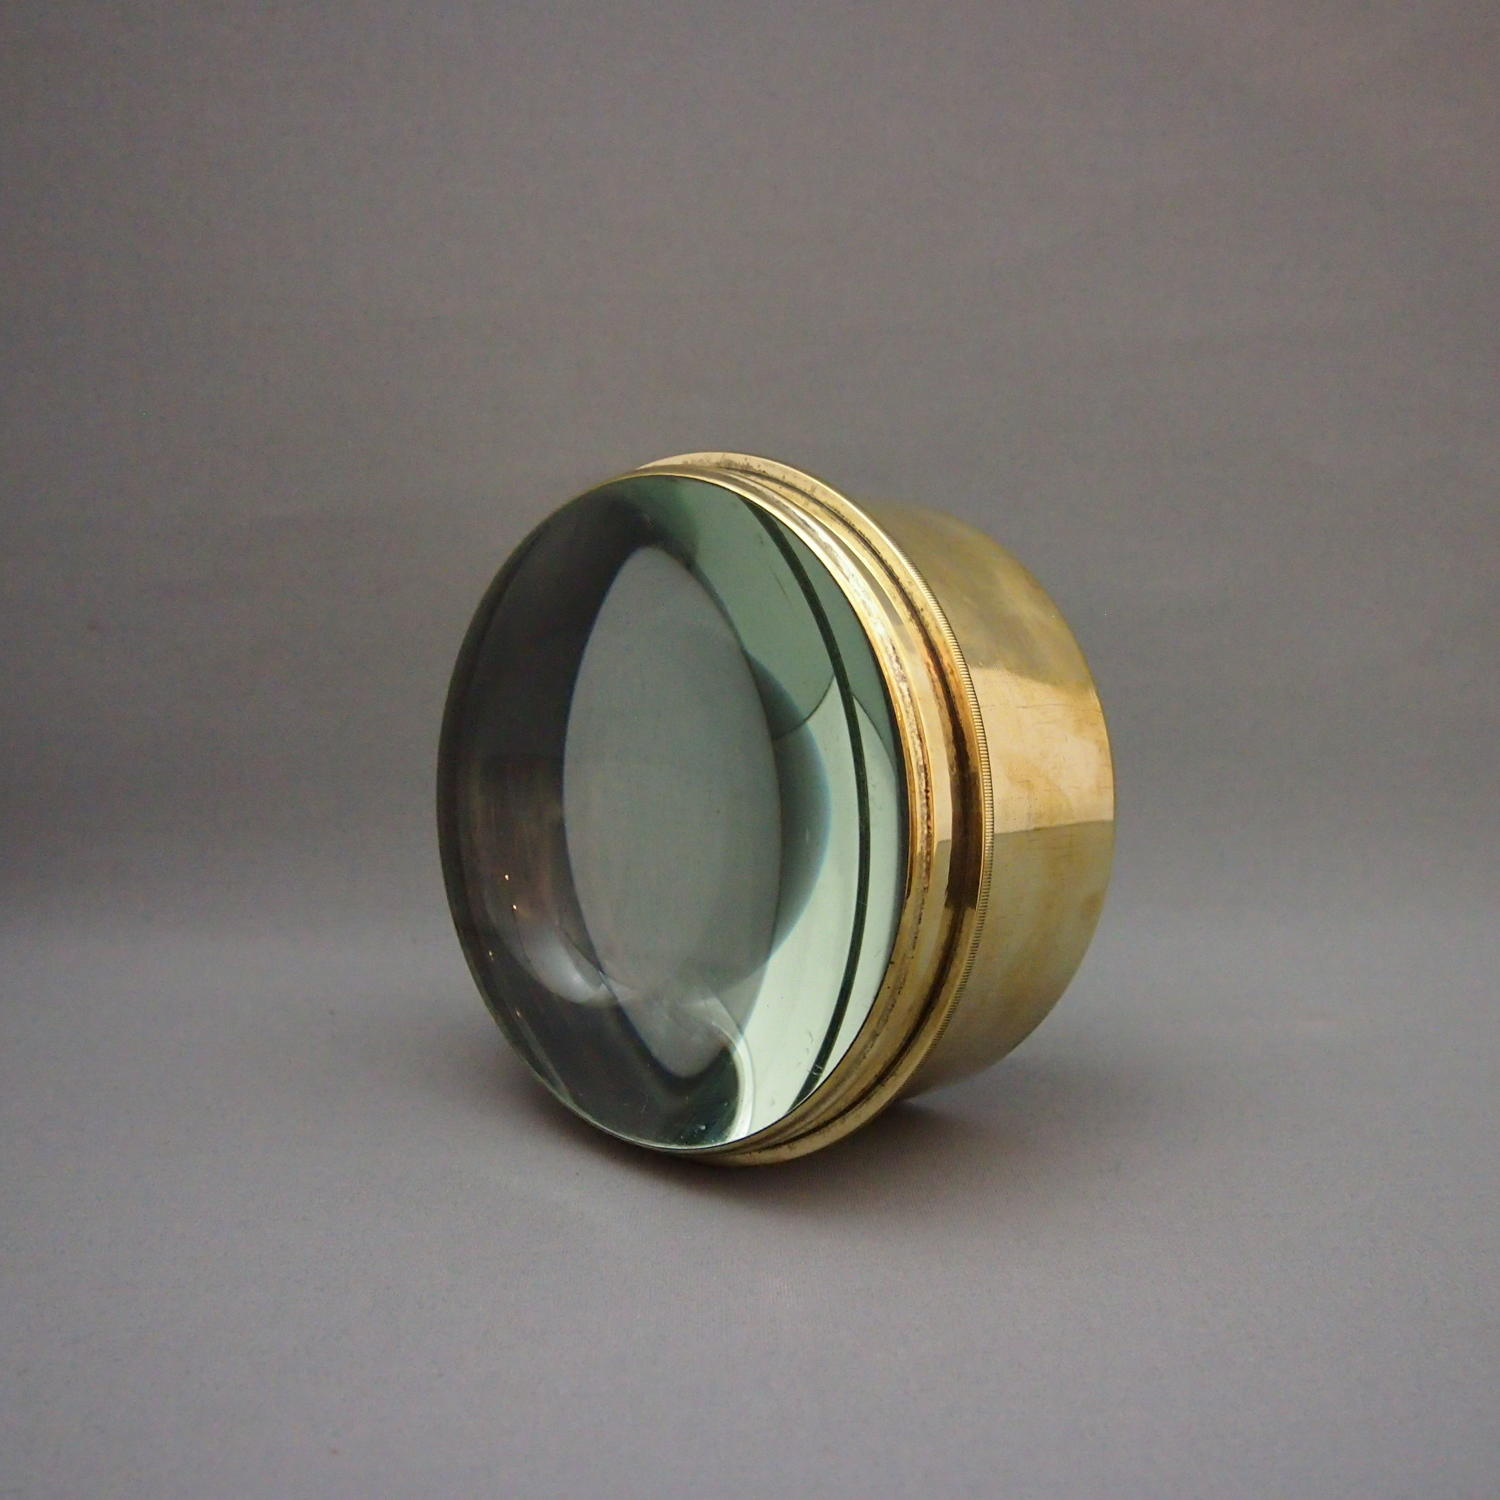 Brass & Glass Desk Lens